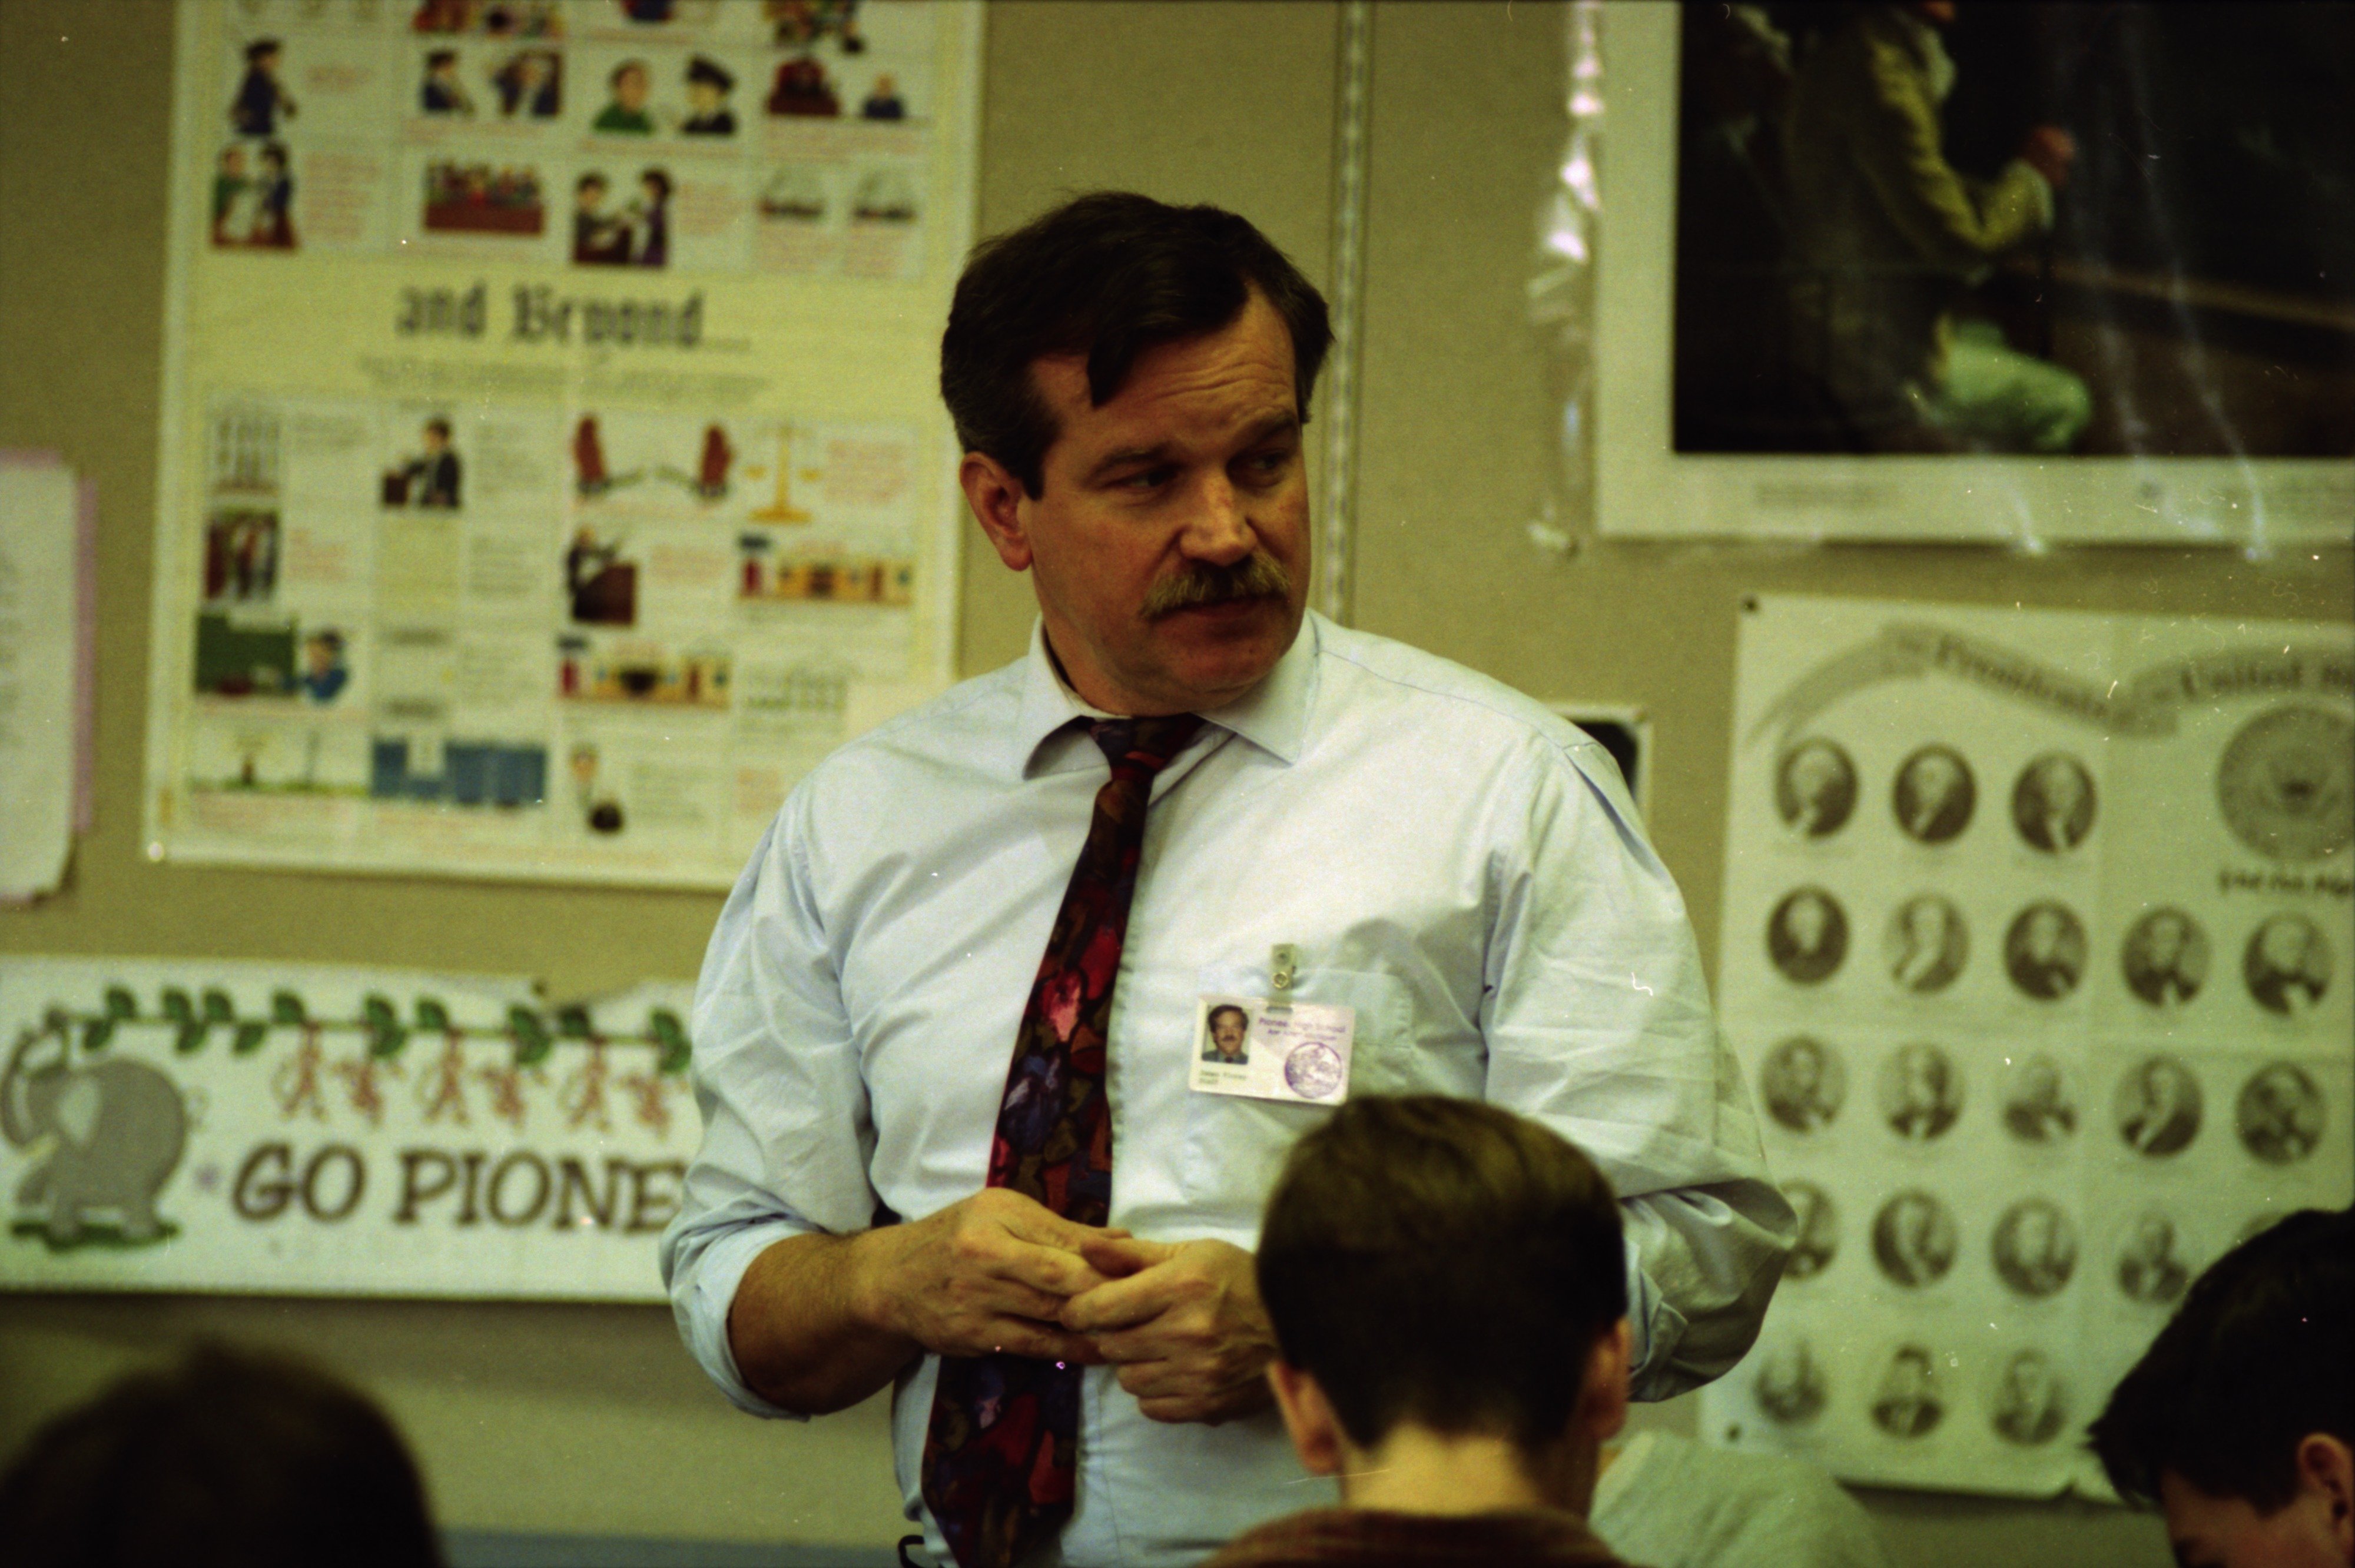 Pioneer High School Teacher and Attorney Jim Florey, February 1994 image